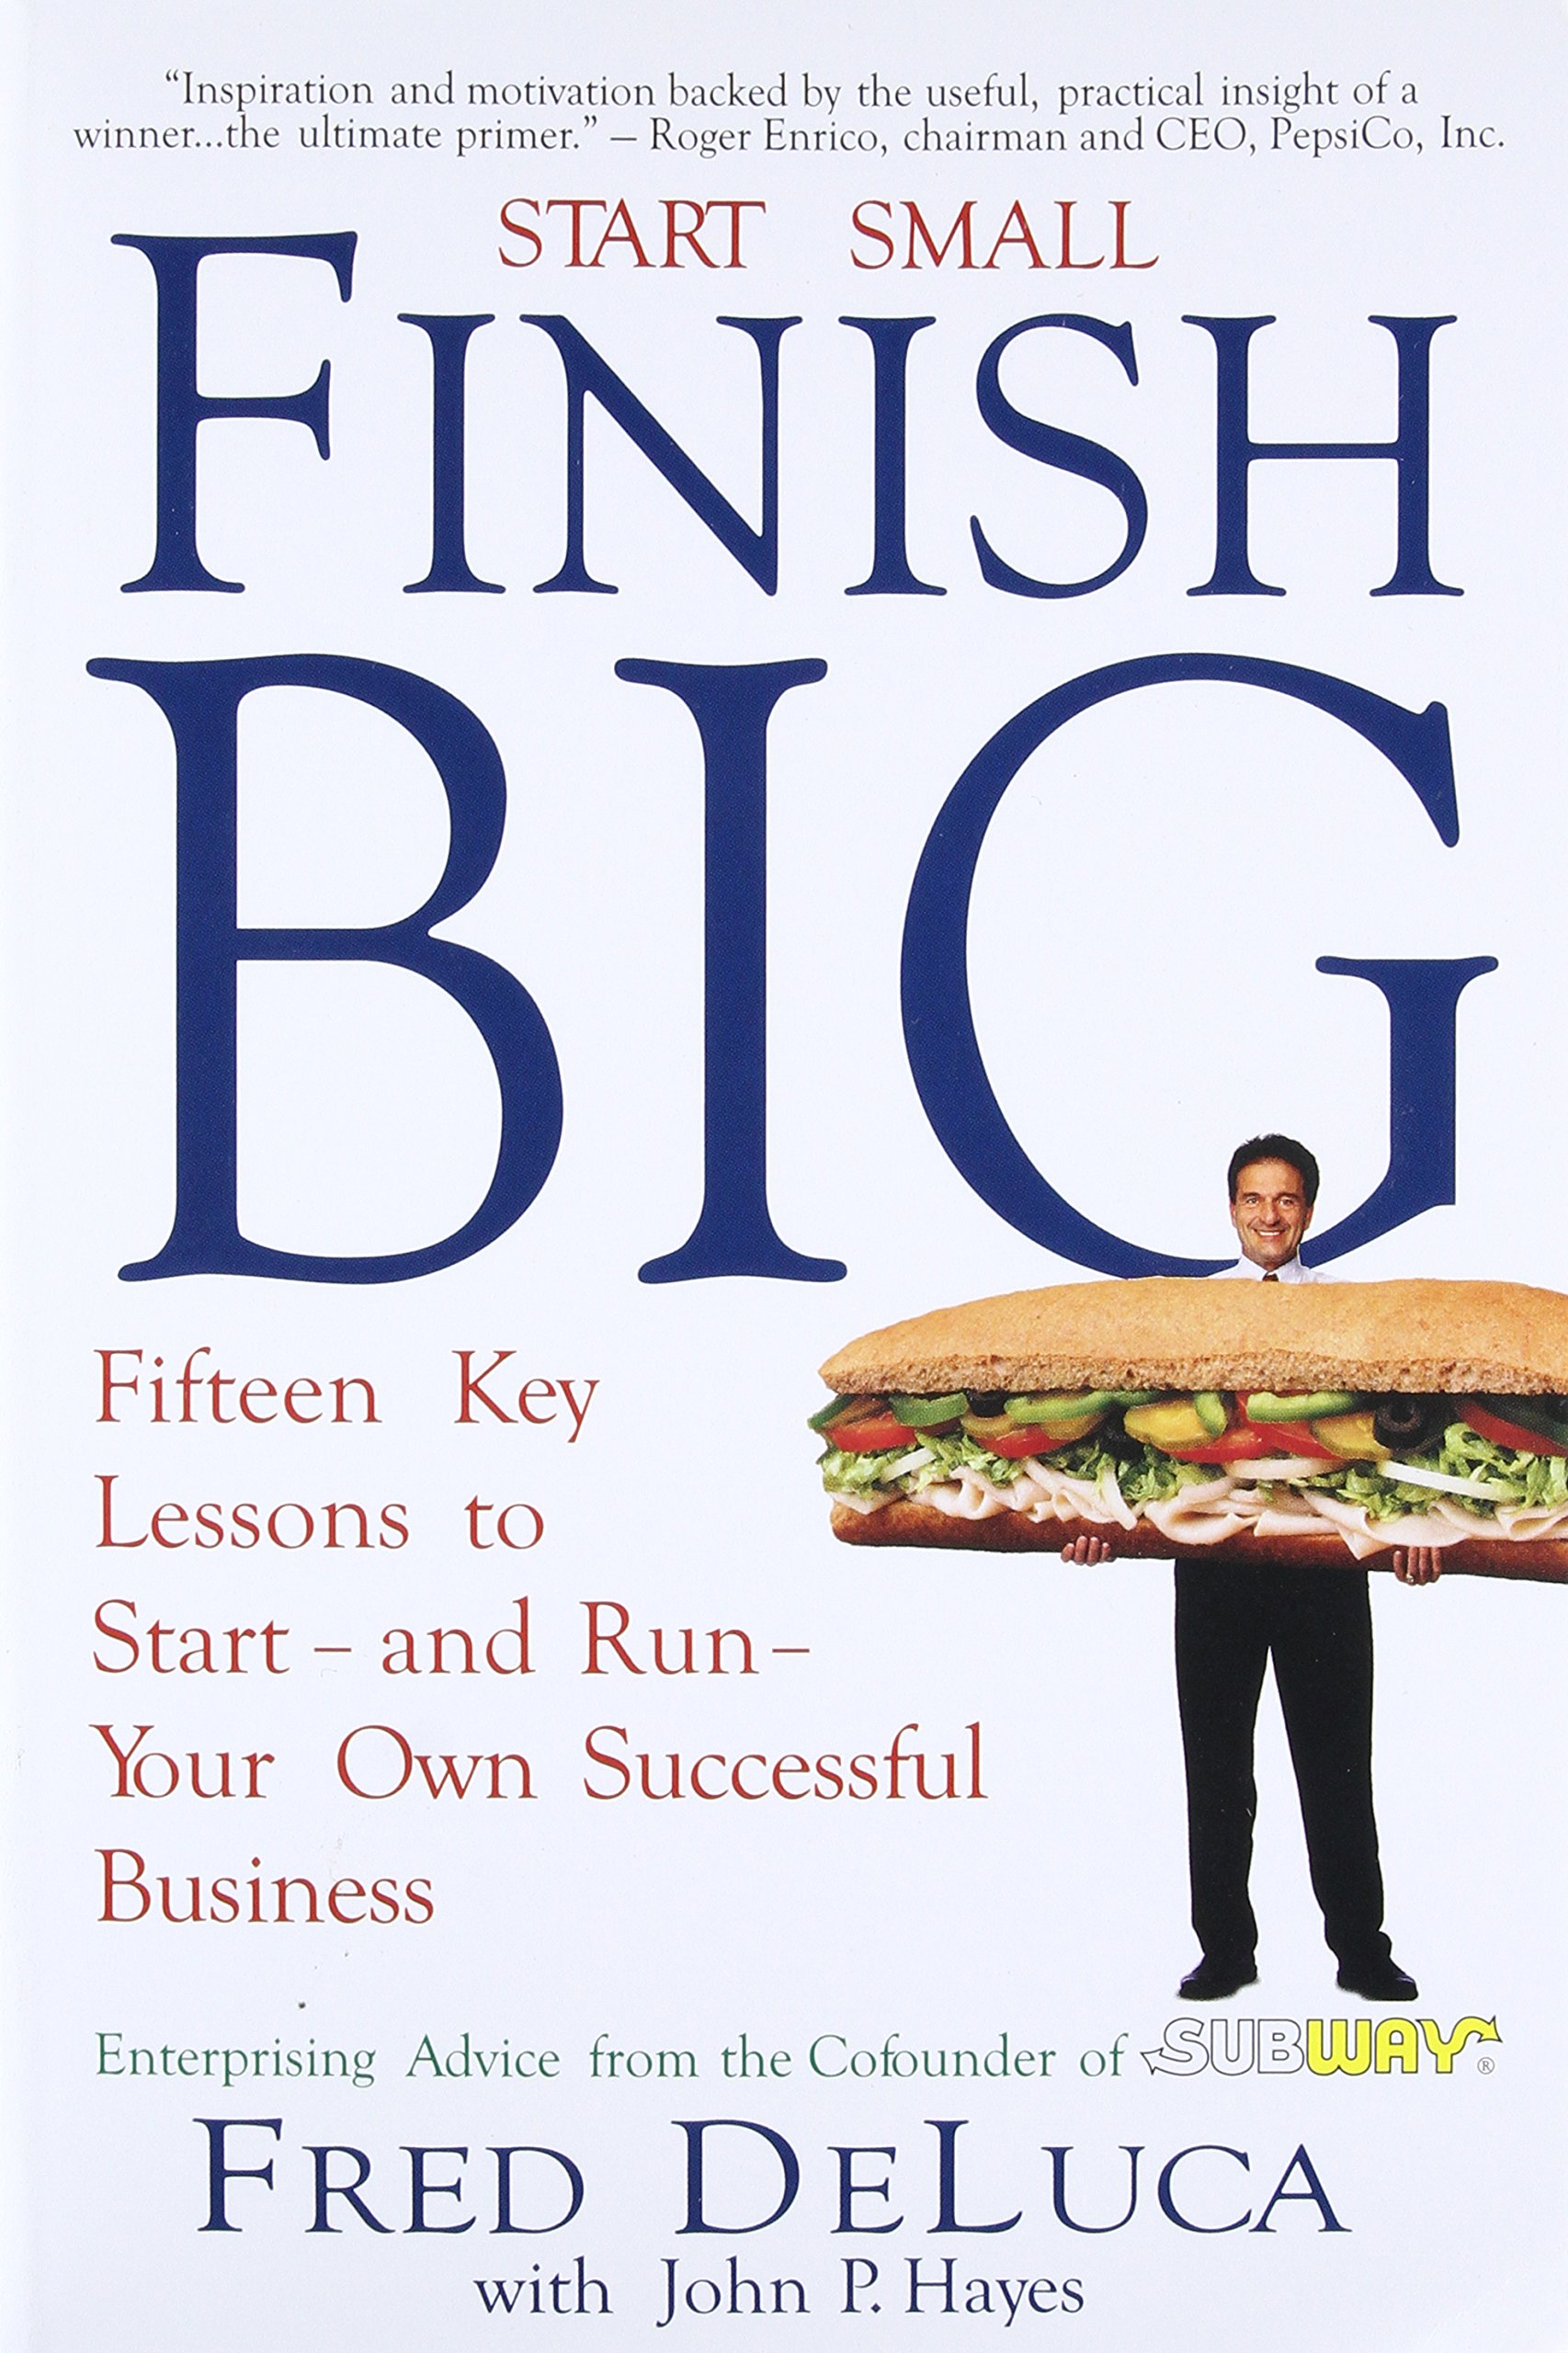 Start Small Finish Big: Fifteen Key Lessons to Start - and Run - Your Own Successful Business pdf